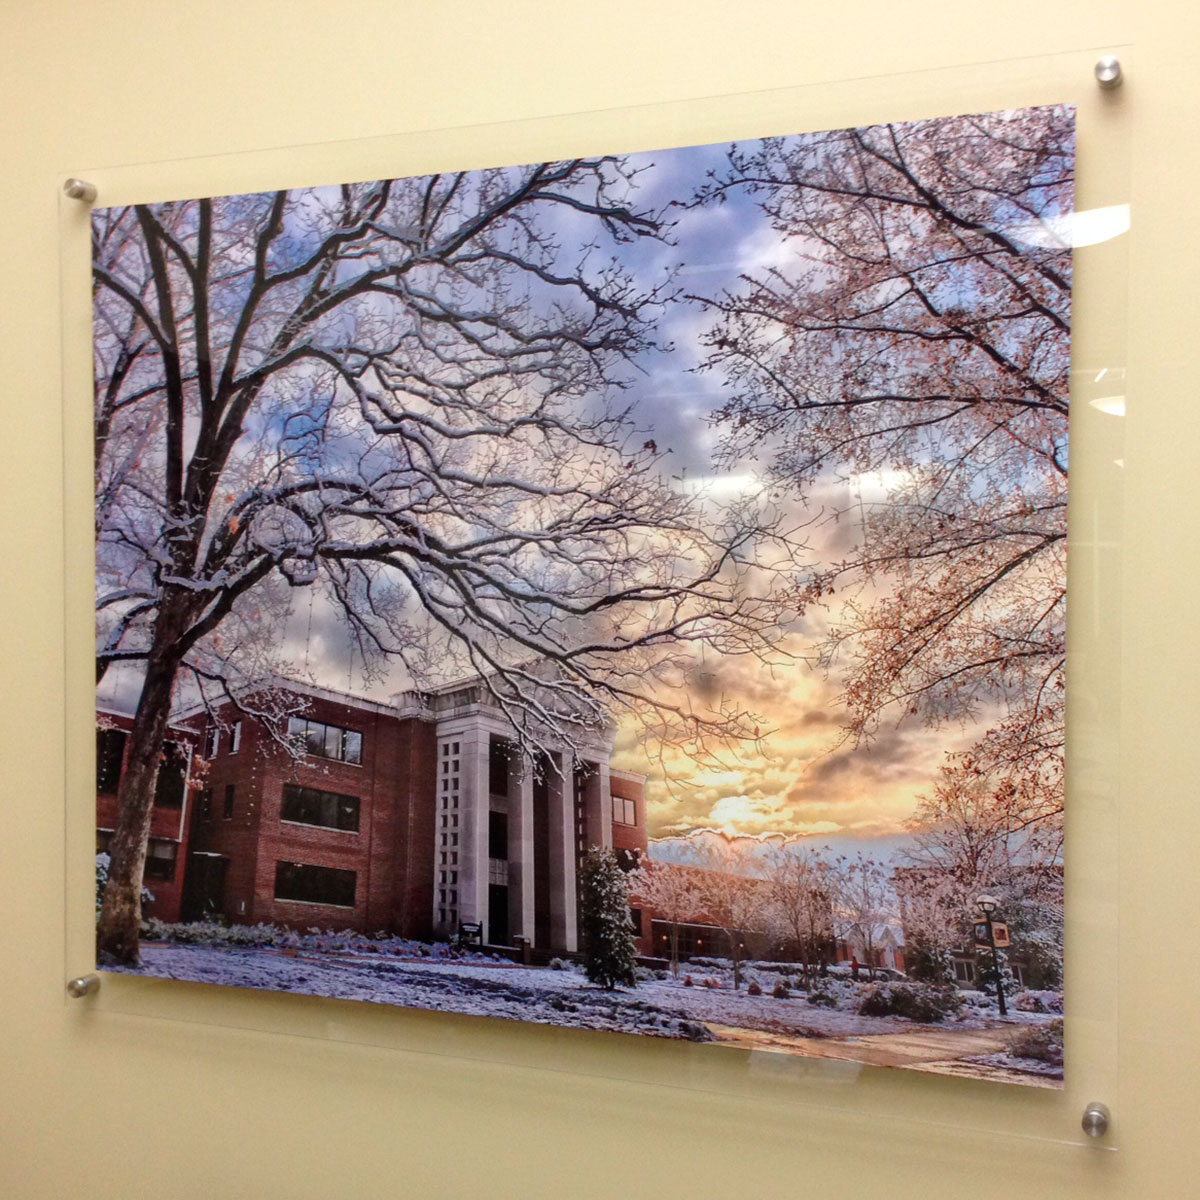 ArtisanHD plexi or direct to acrylic print landscape photography